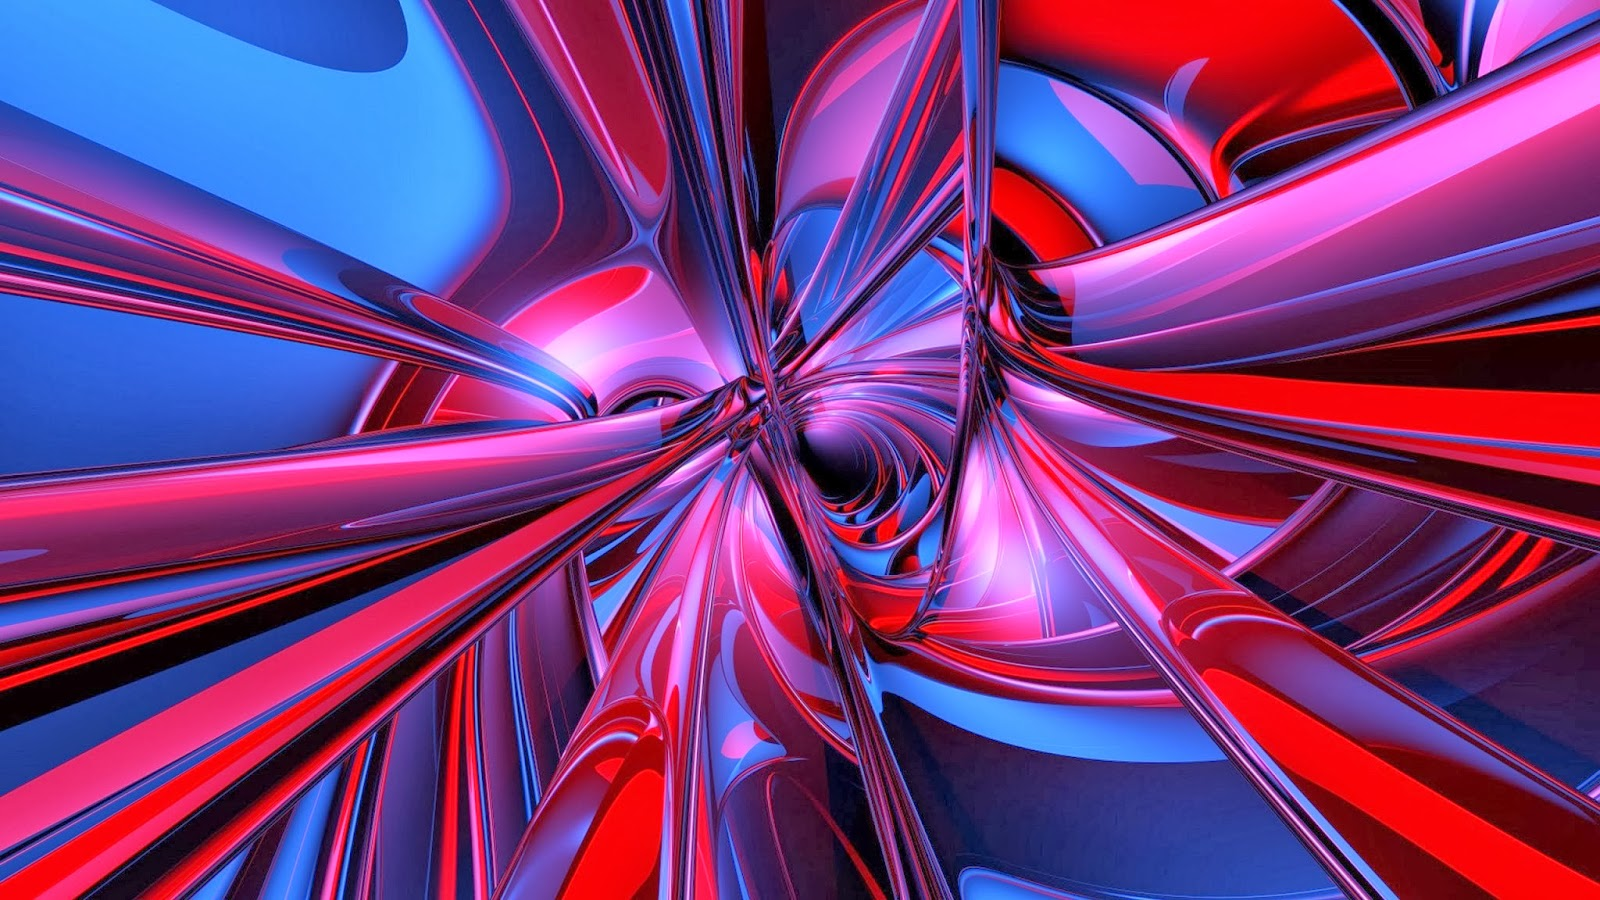 Windows 8 HD Wallpapers: Abstract HD Wallpapers Part 1